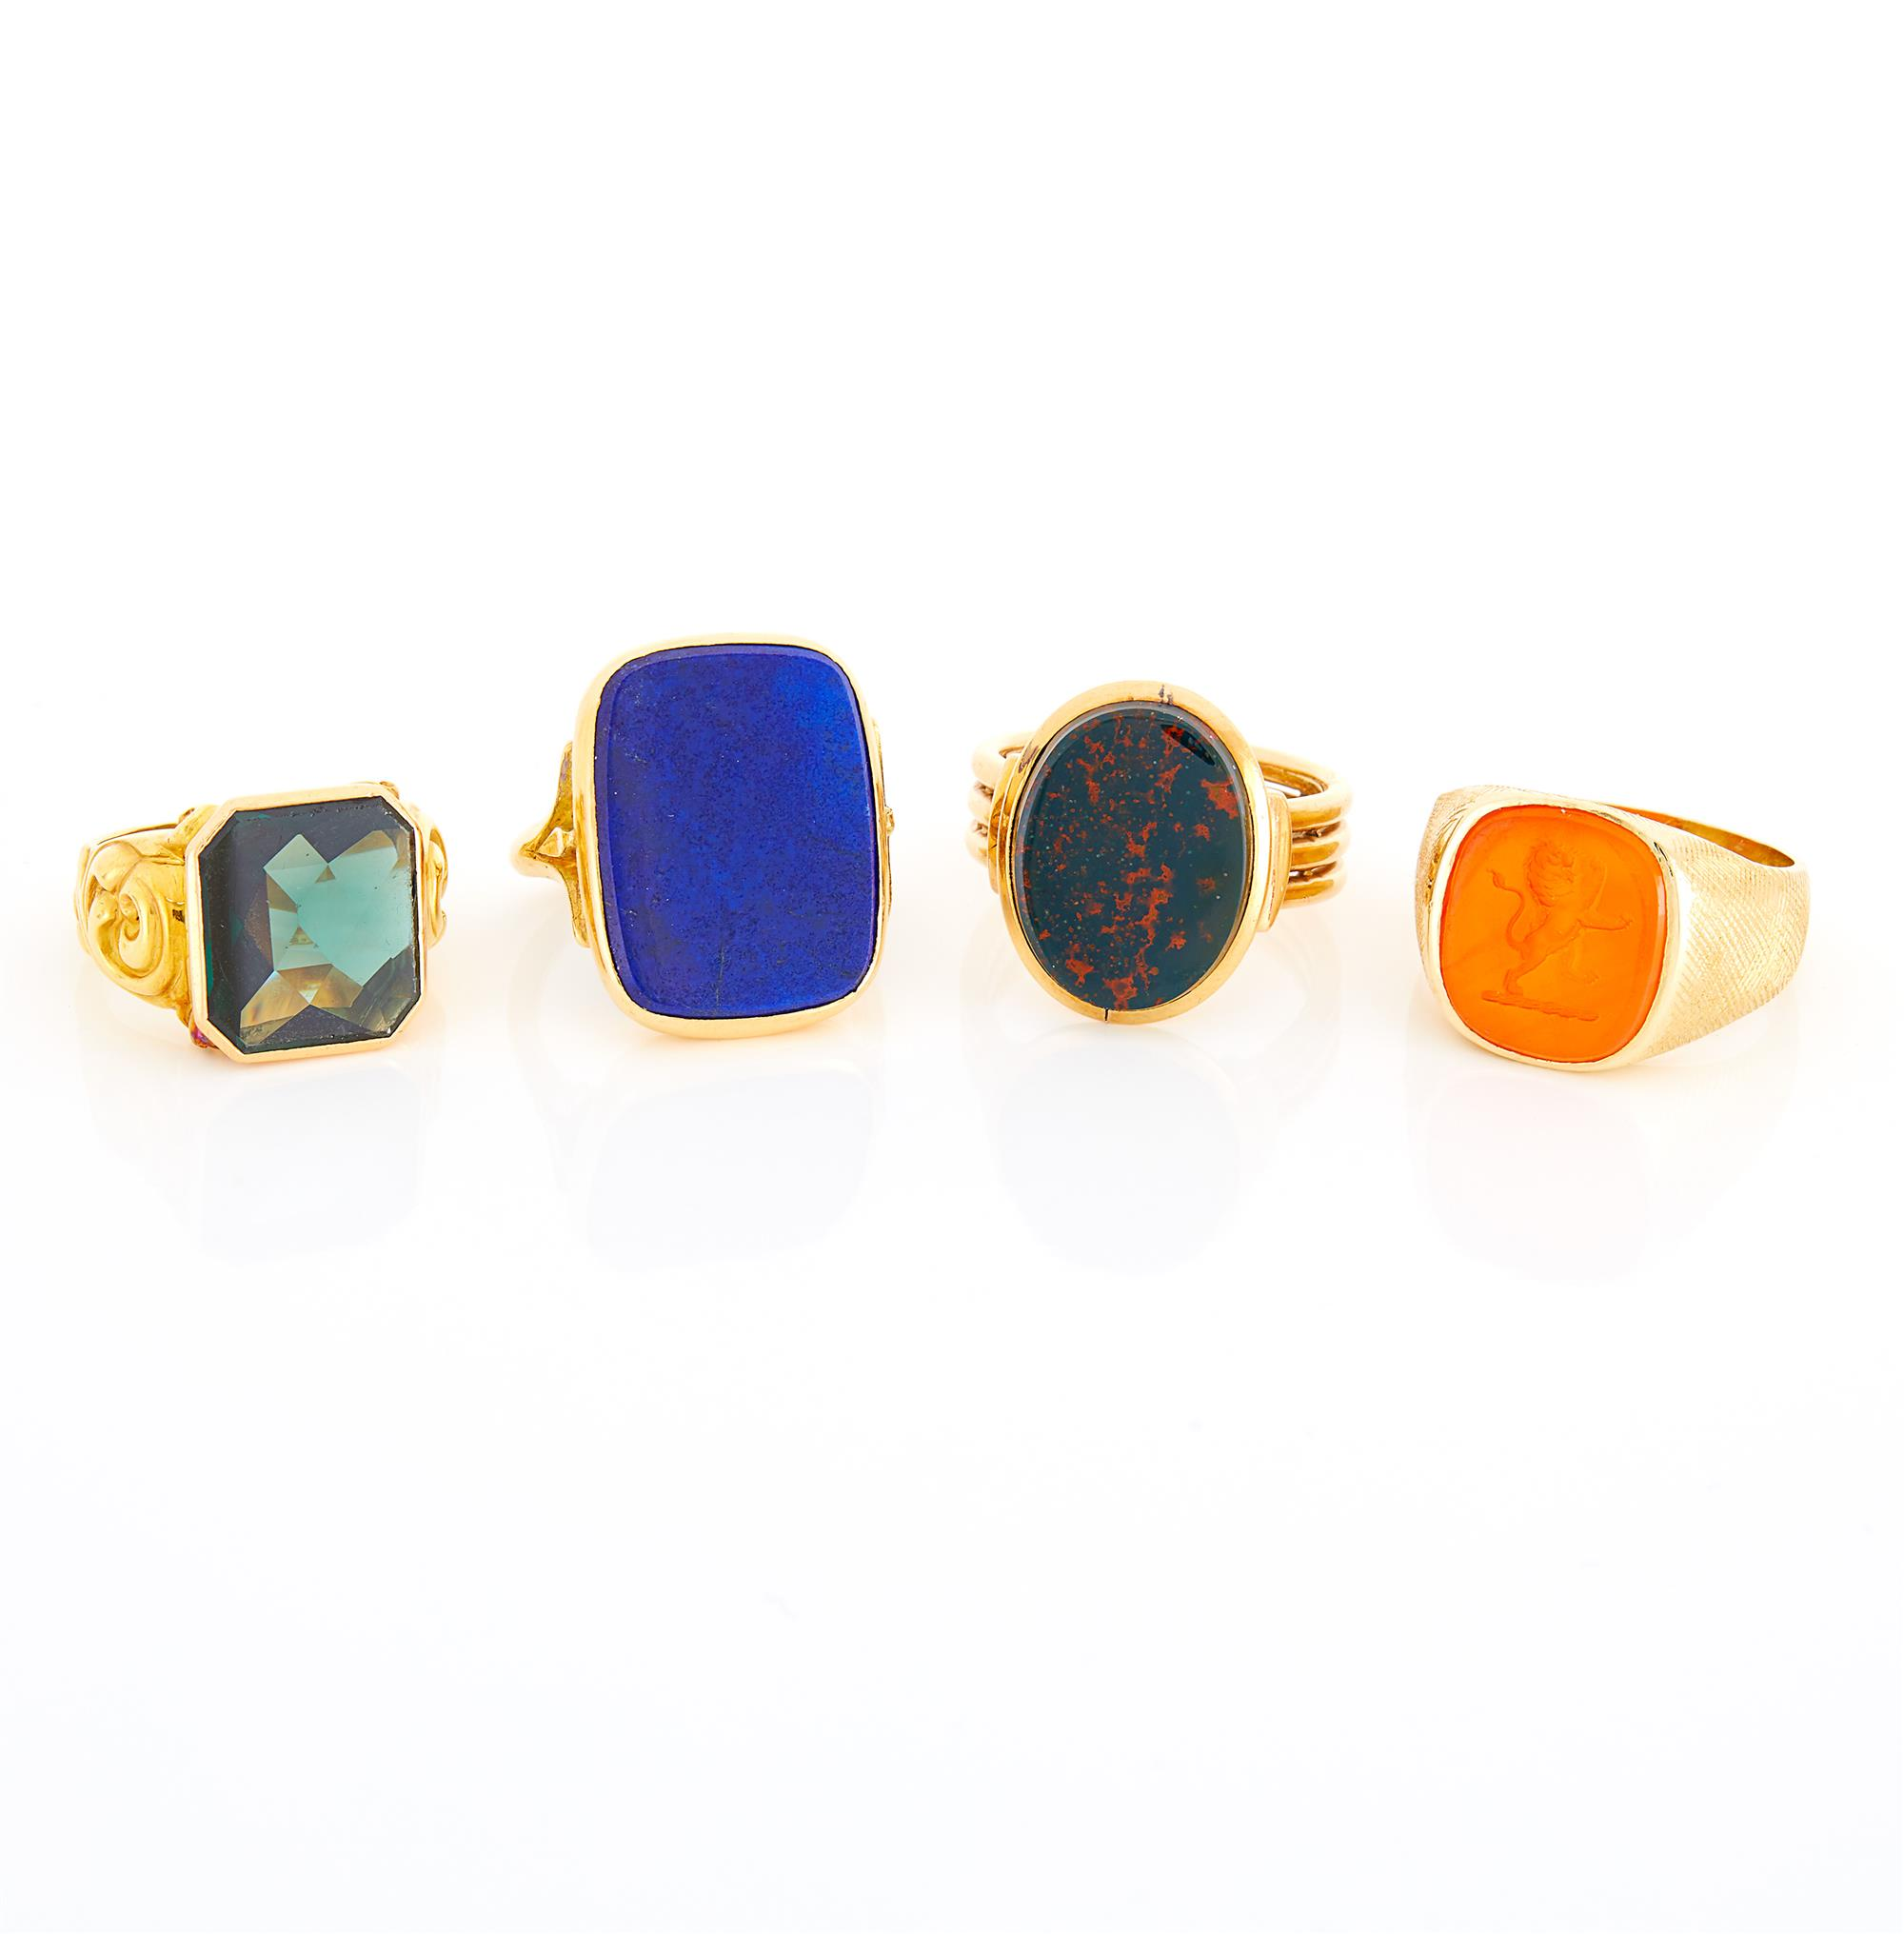 Lot image - Four Gold, Lapis, Bloodstone, Green Tourmaline and Intaglio Rings